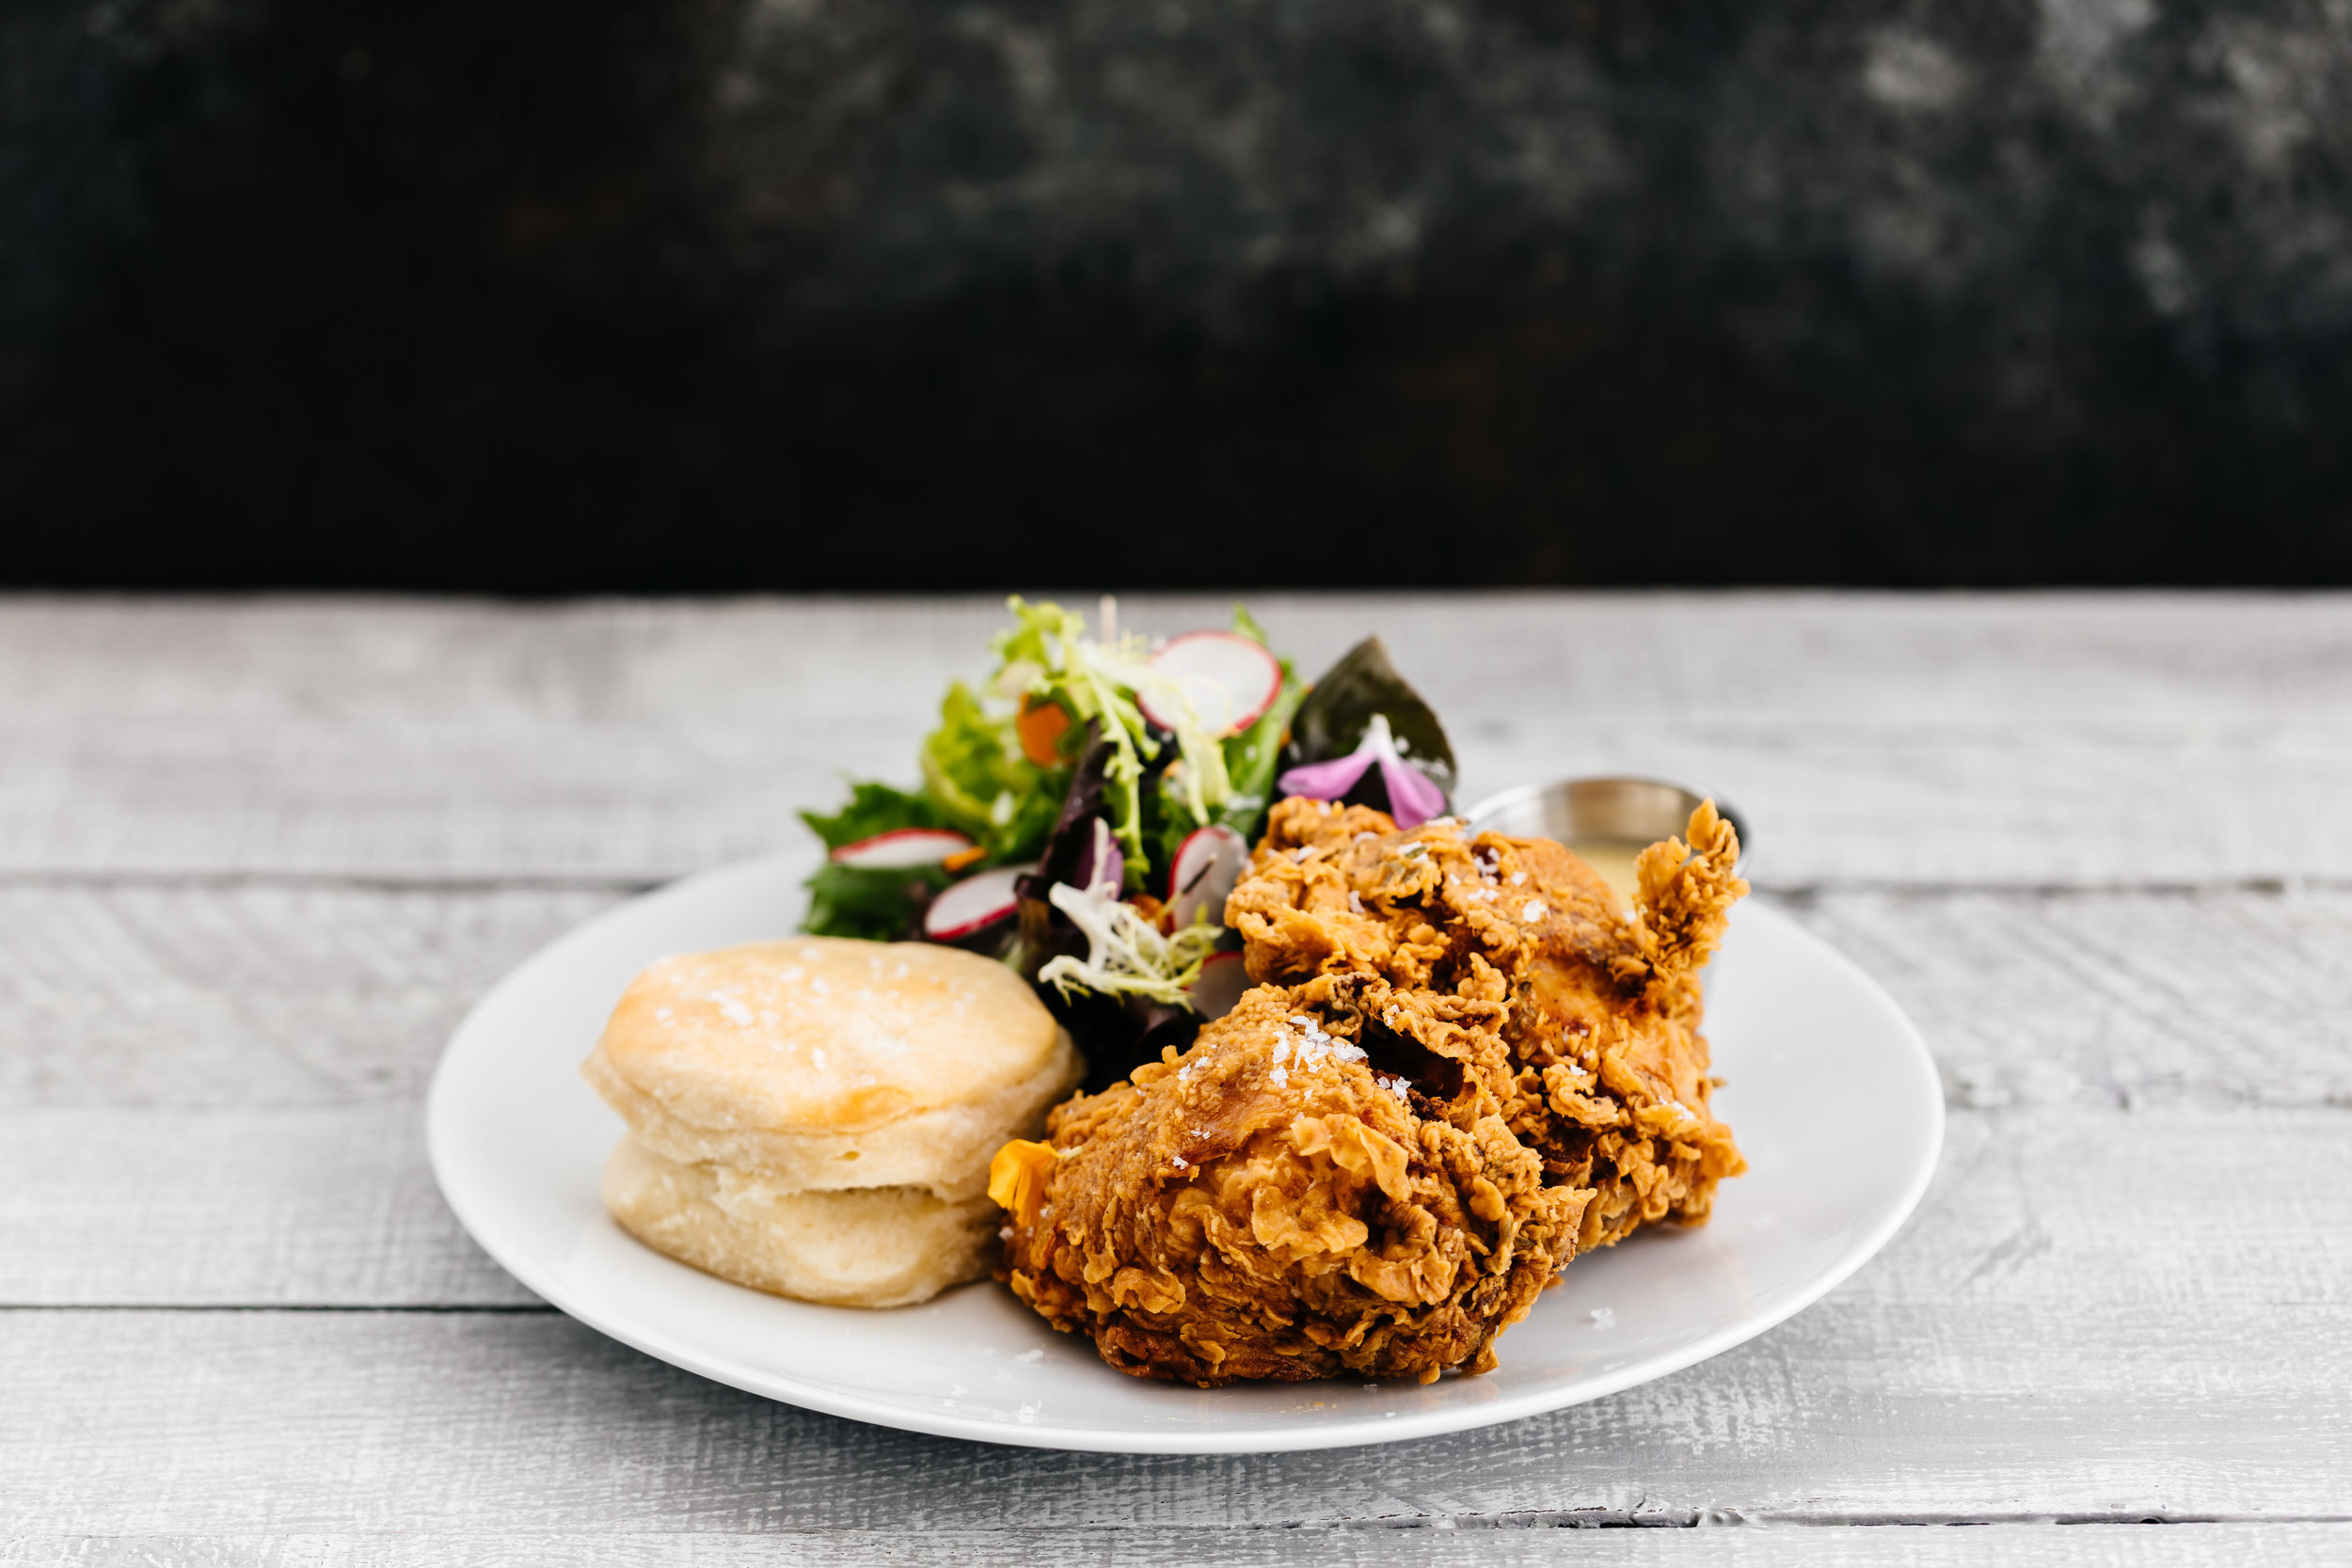 Fried Chicken Boxed Lunches Starting at $18/PERSON